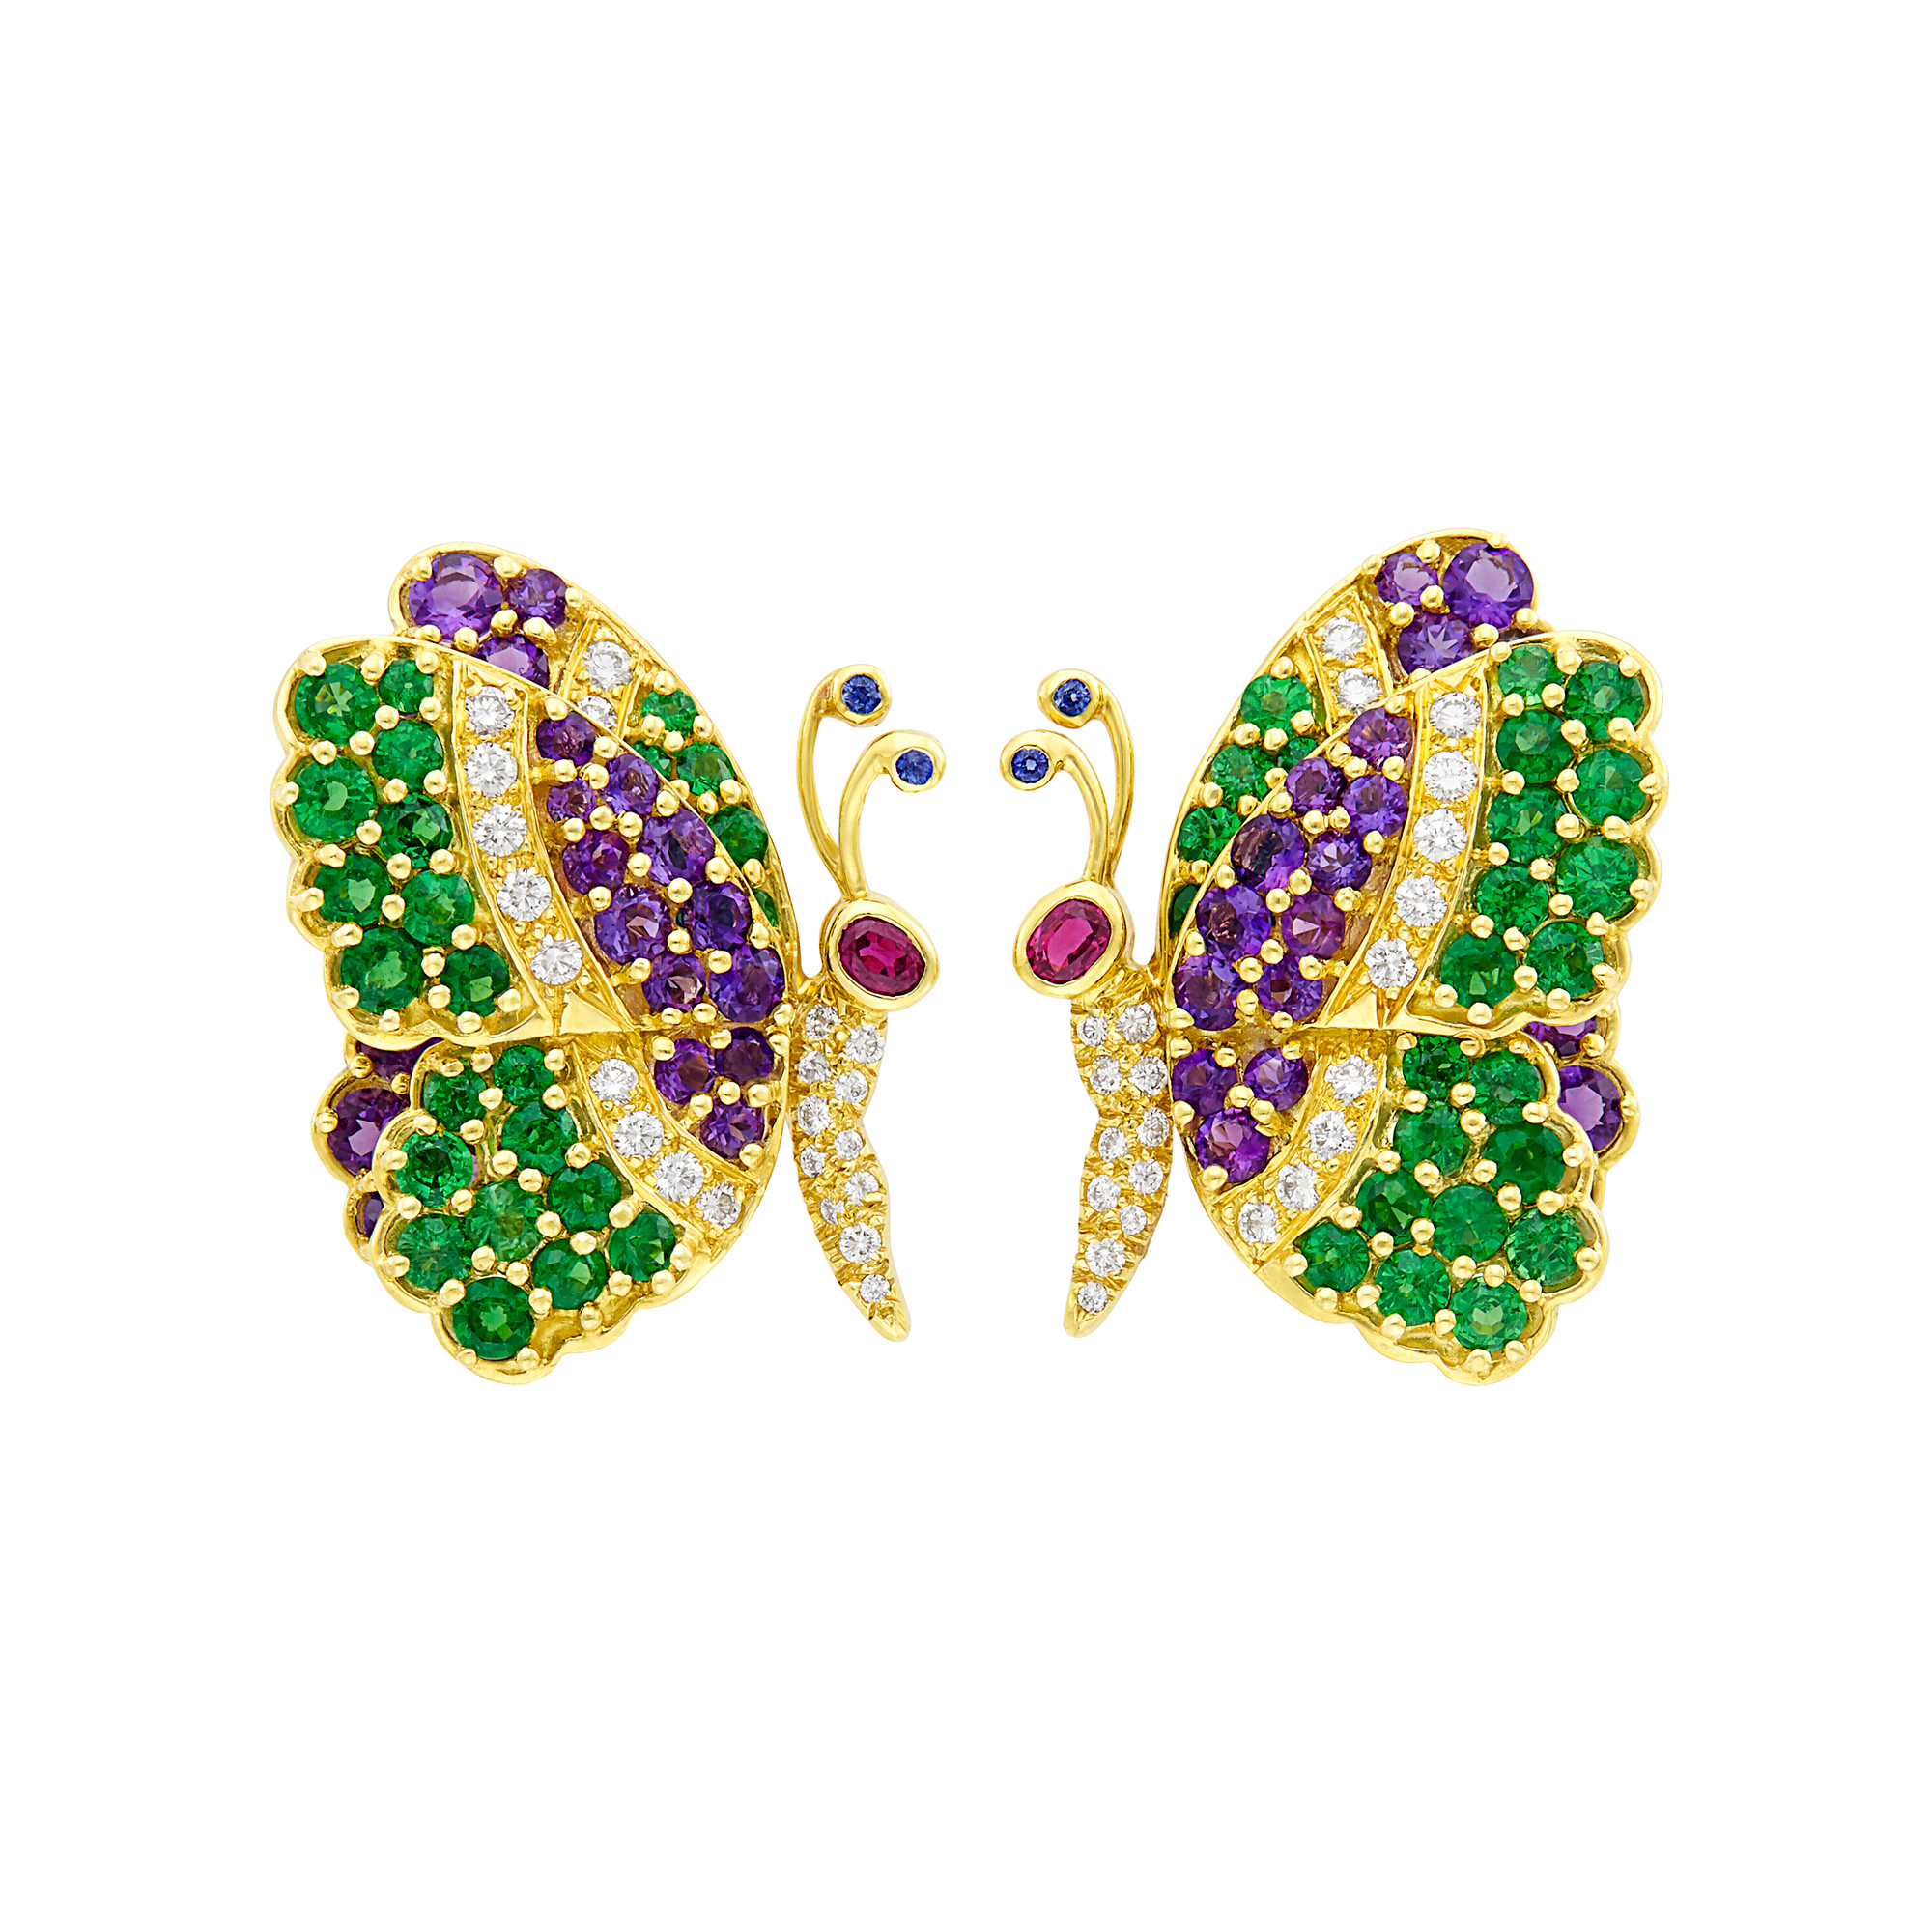 Lot image - Pair of Gold, Gem-Set and Diamond Butterfly Earclips, Jean Vitau